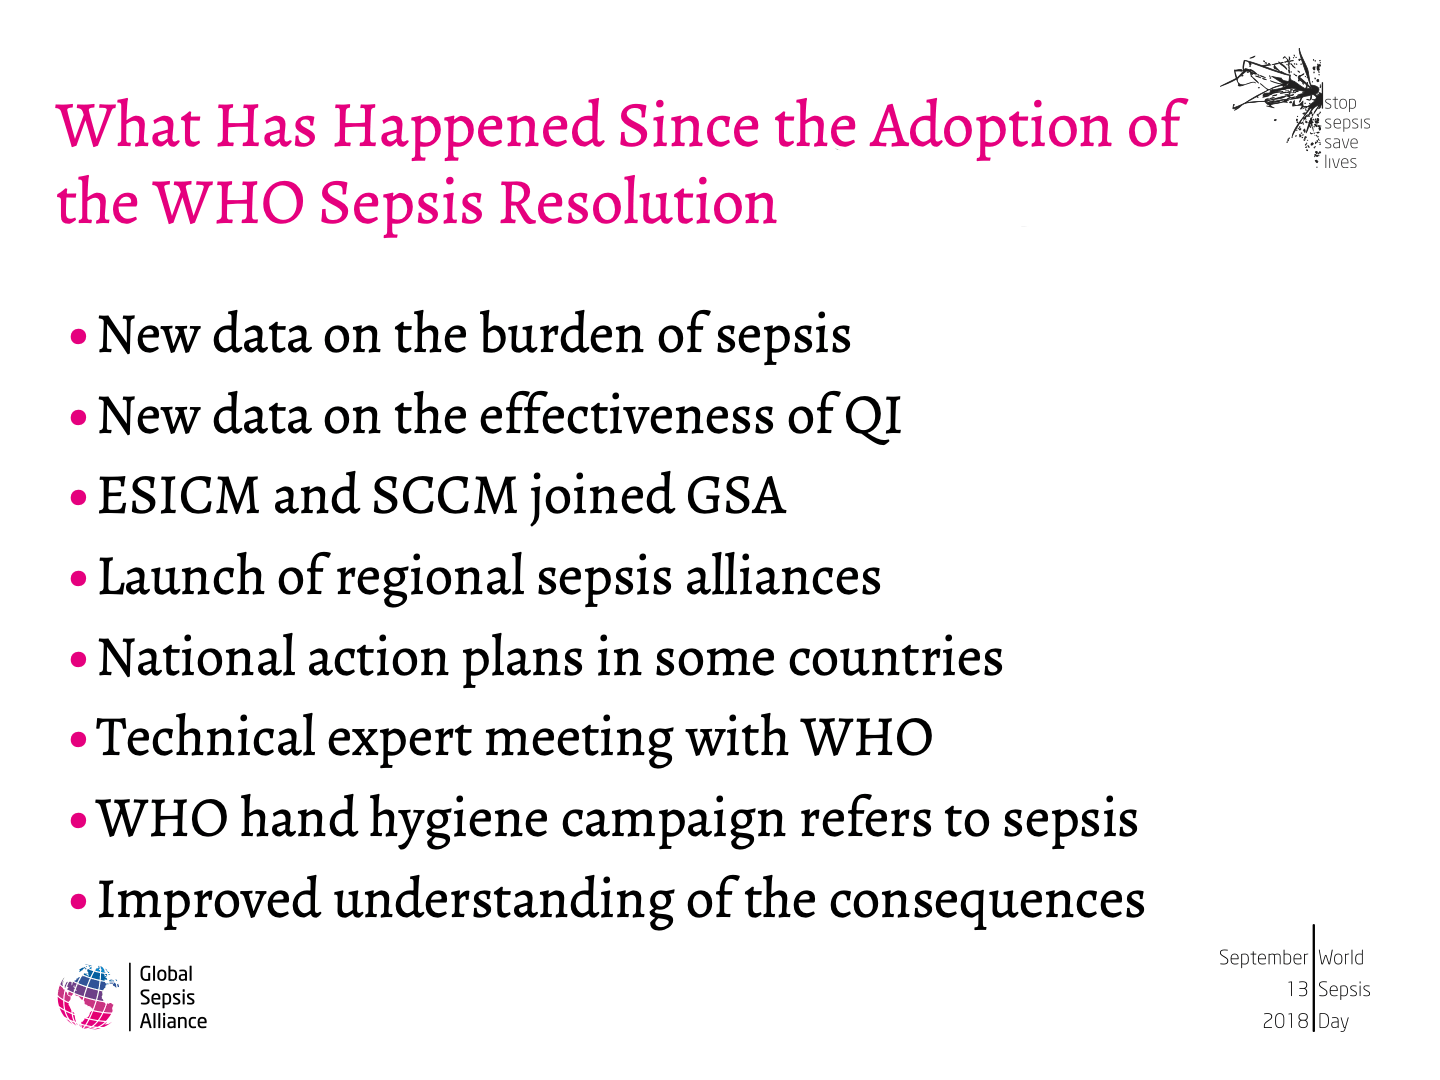 Strategy of the GSA to Implement WHO Sepsis Resolution4.png